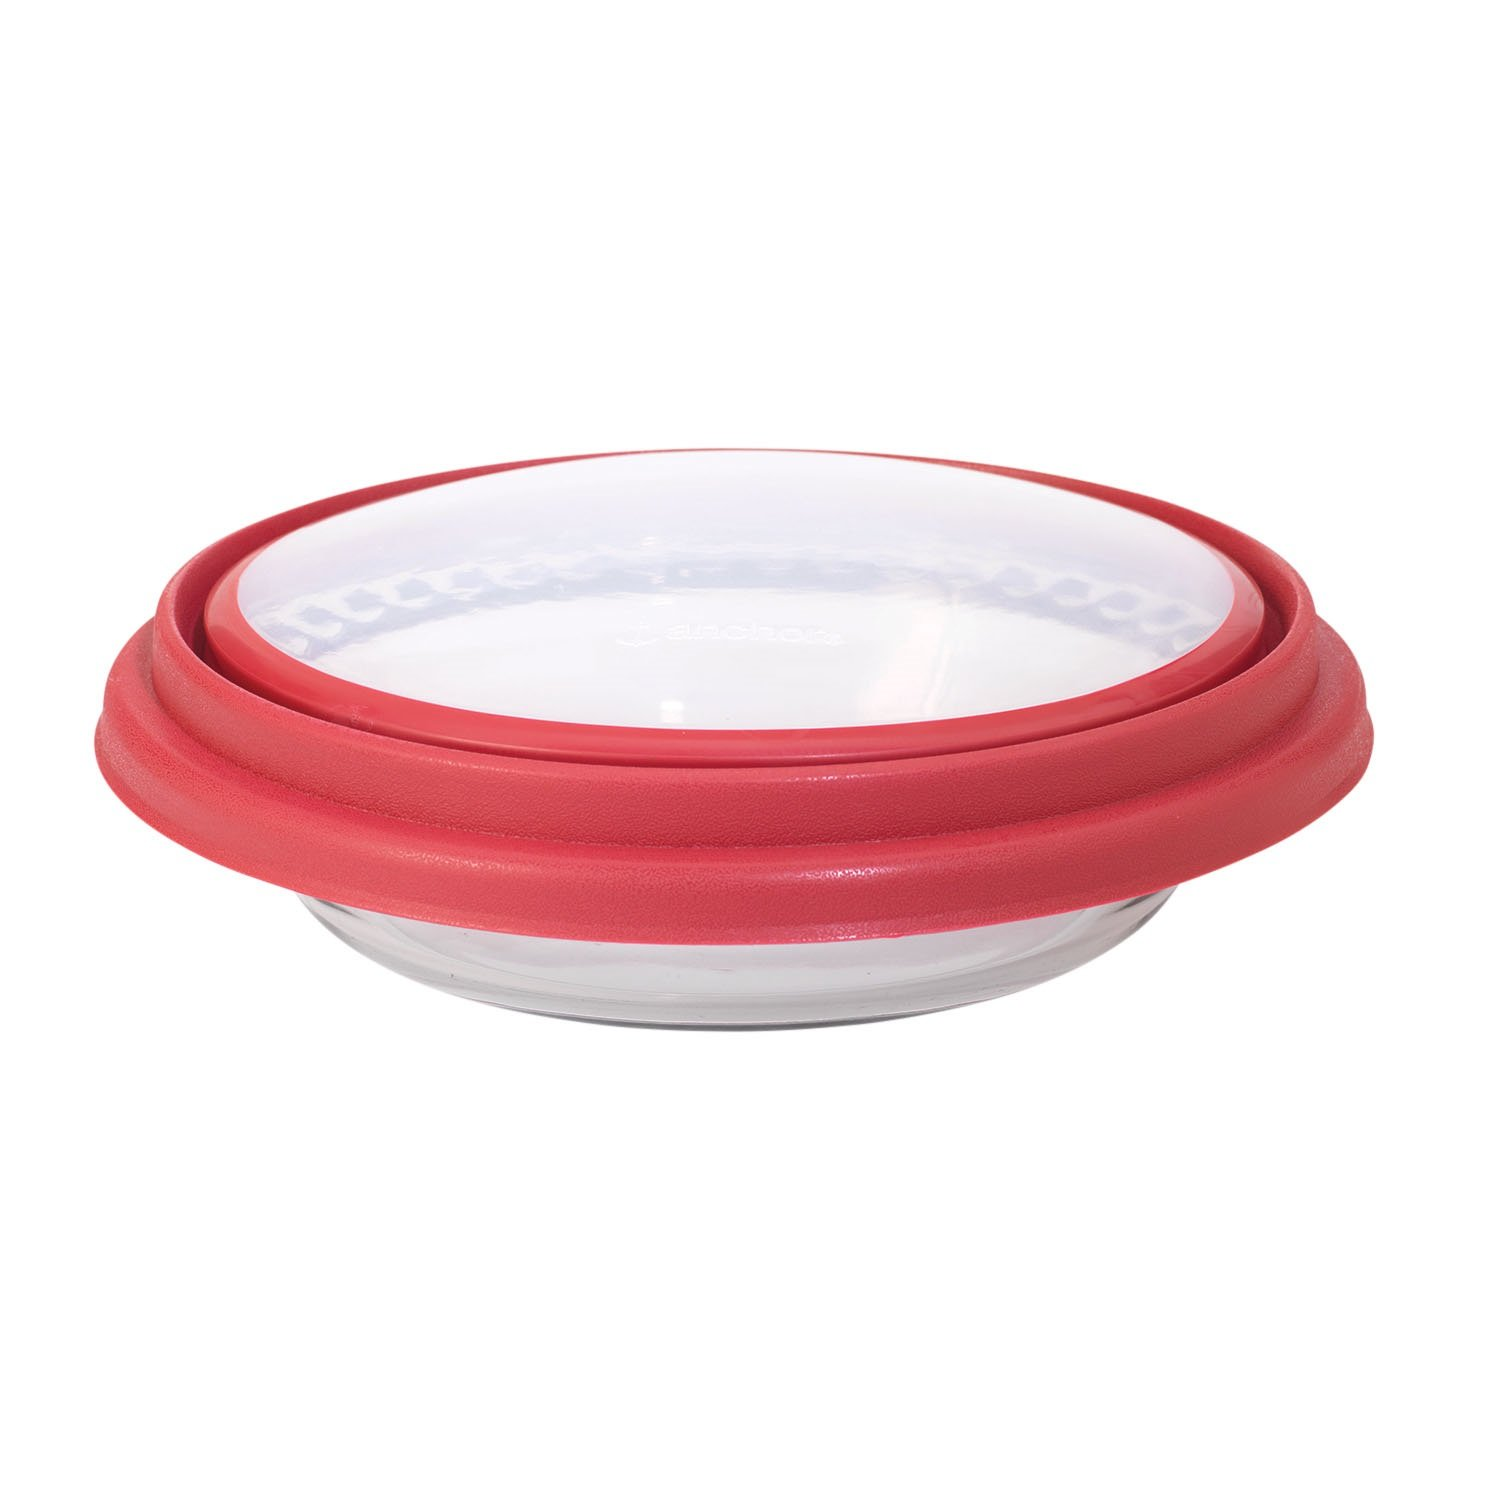 Anchor Hocking 9.5 in. Deep Pie w/Wide Fluted Edge and Red Expandable Cover 11461